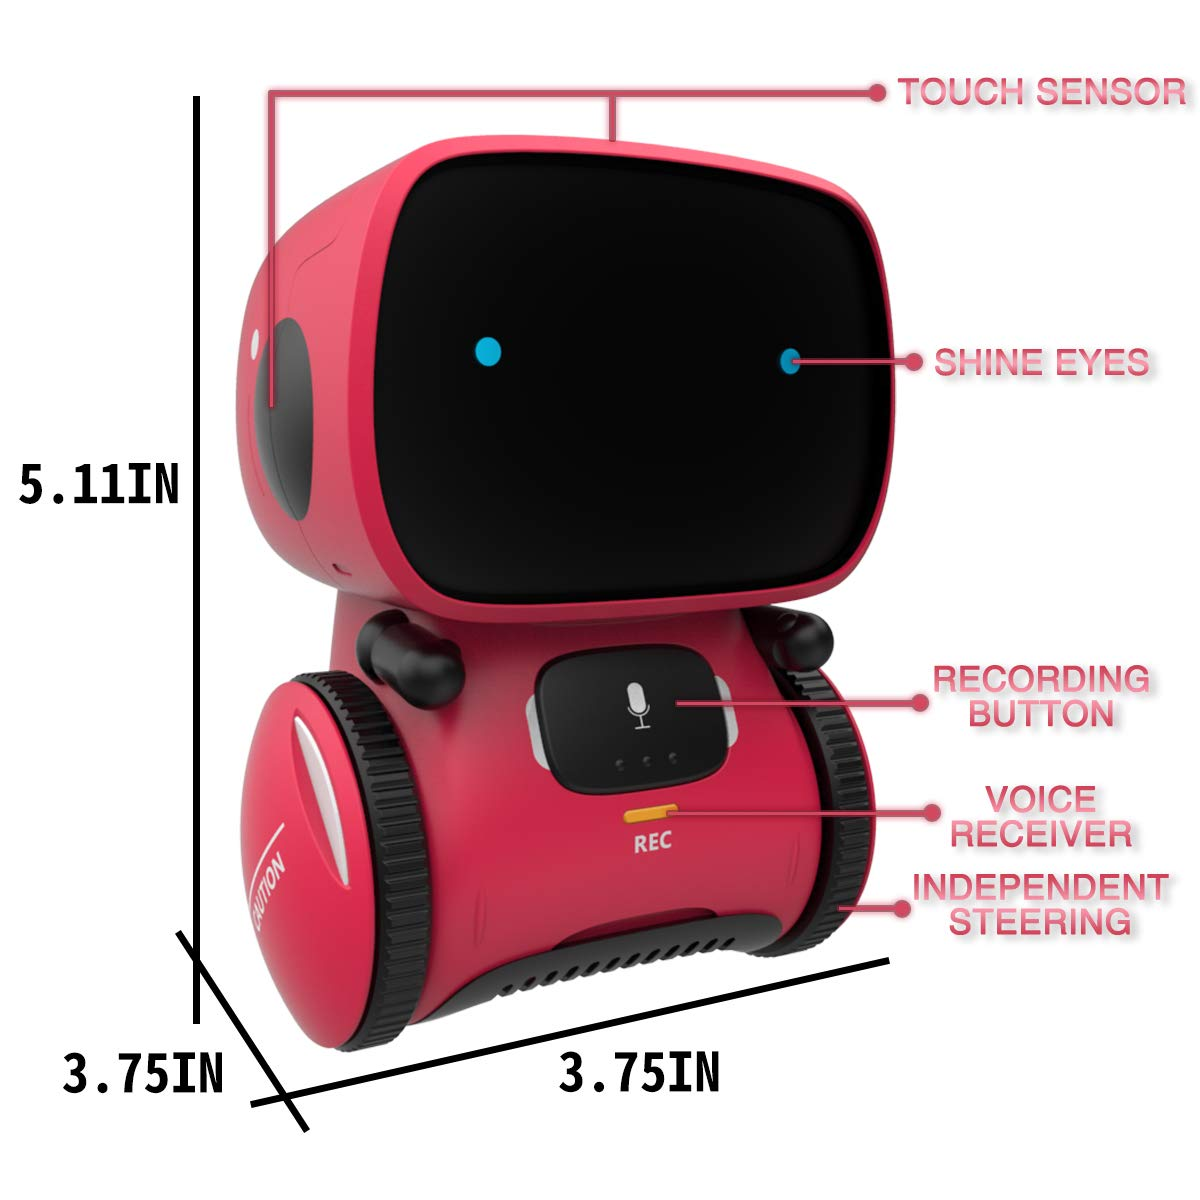 98K Kids Robot Toy, Smart Talking Robots, Gift for Boys and Girls Age 3+, Intelligent Partner and Teacher, with Voice Controlled and Touch Sensor, Singing, Dancing, Repeating by 98K (Image #6)